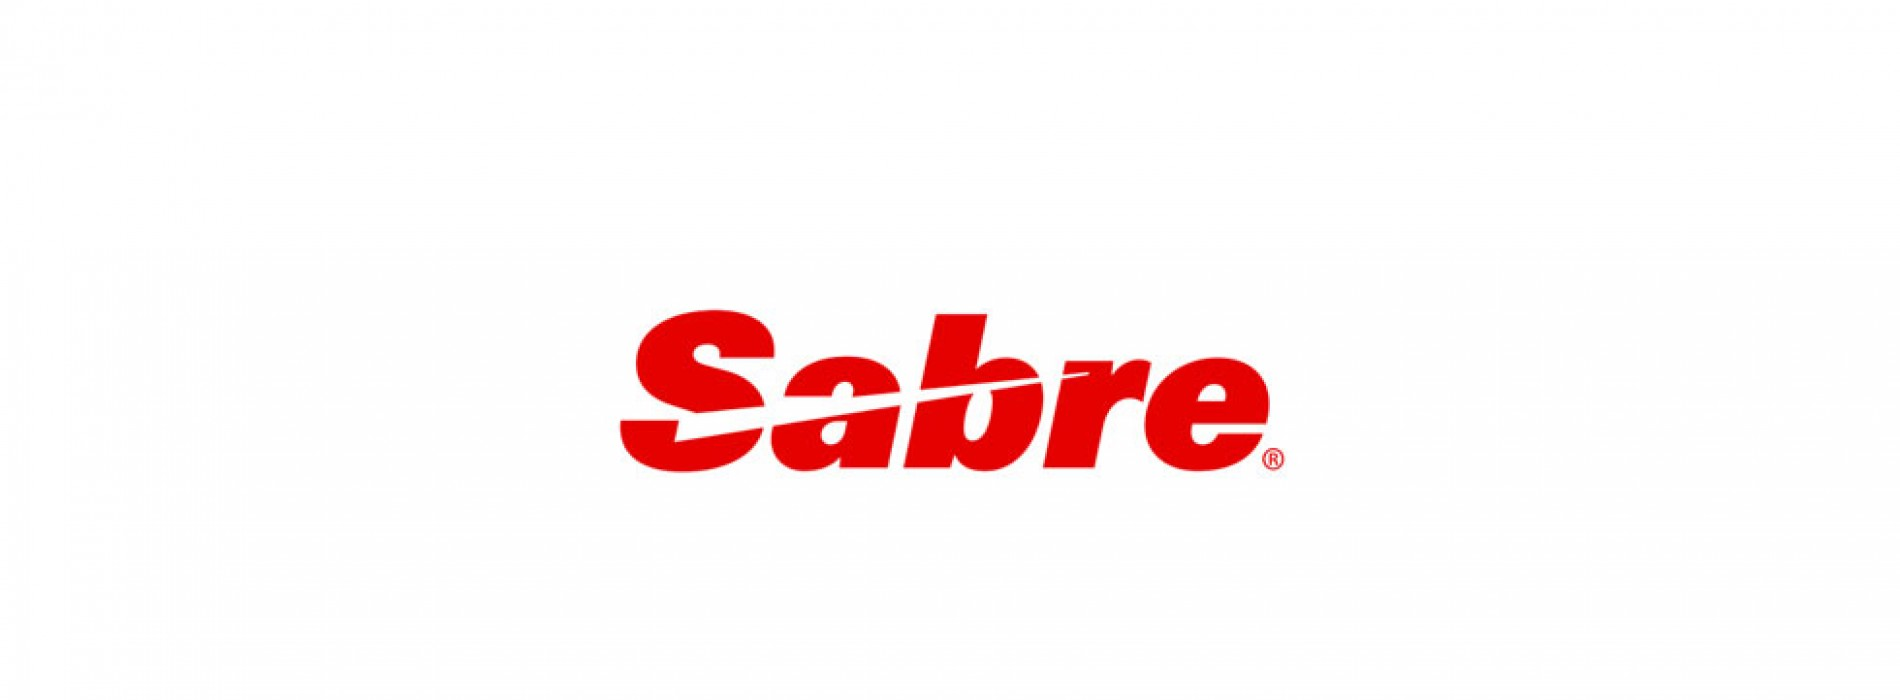 Sabre expands hotel choices with Expedia